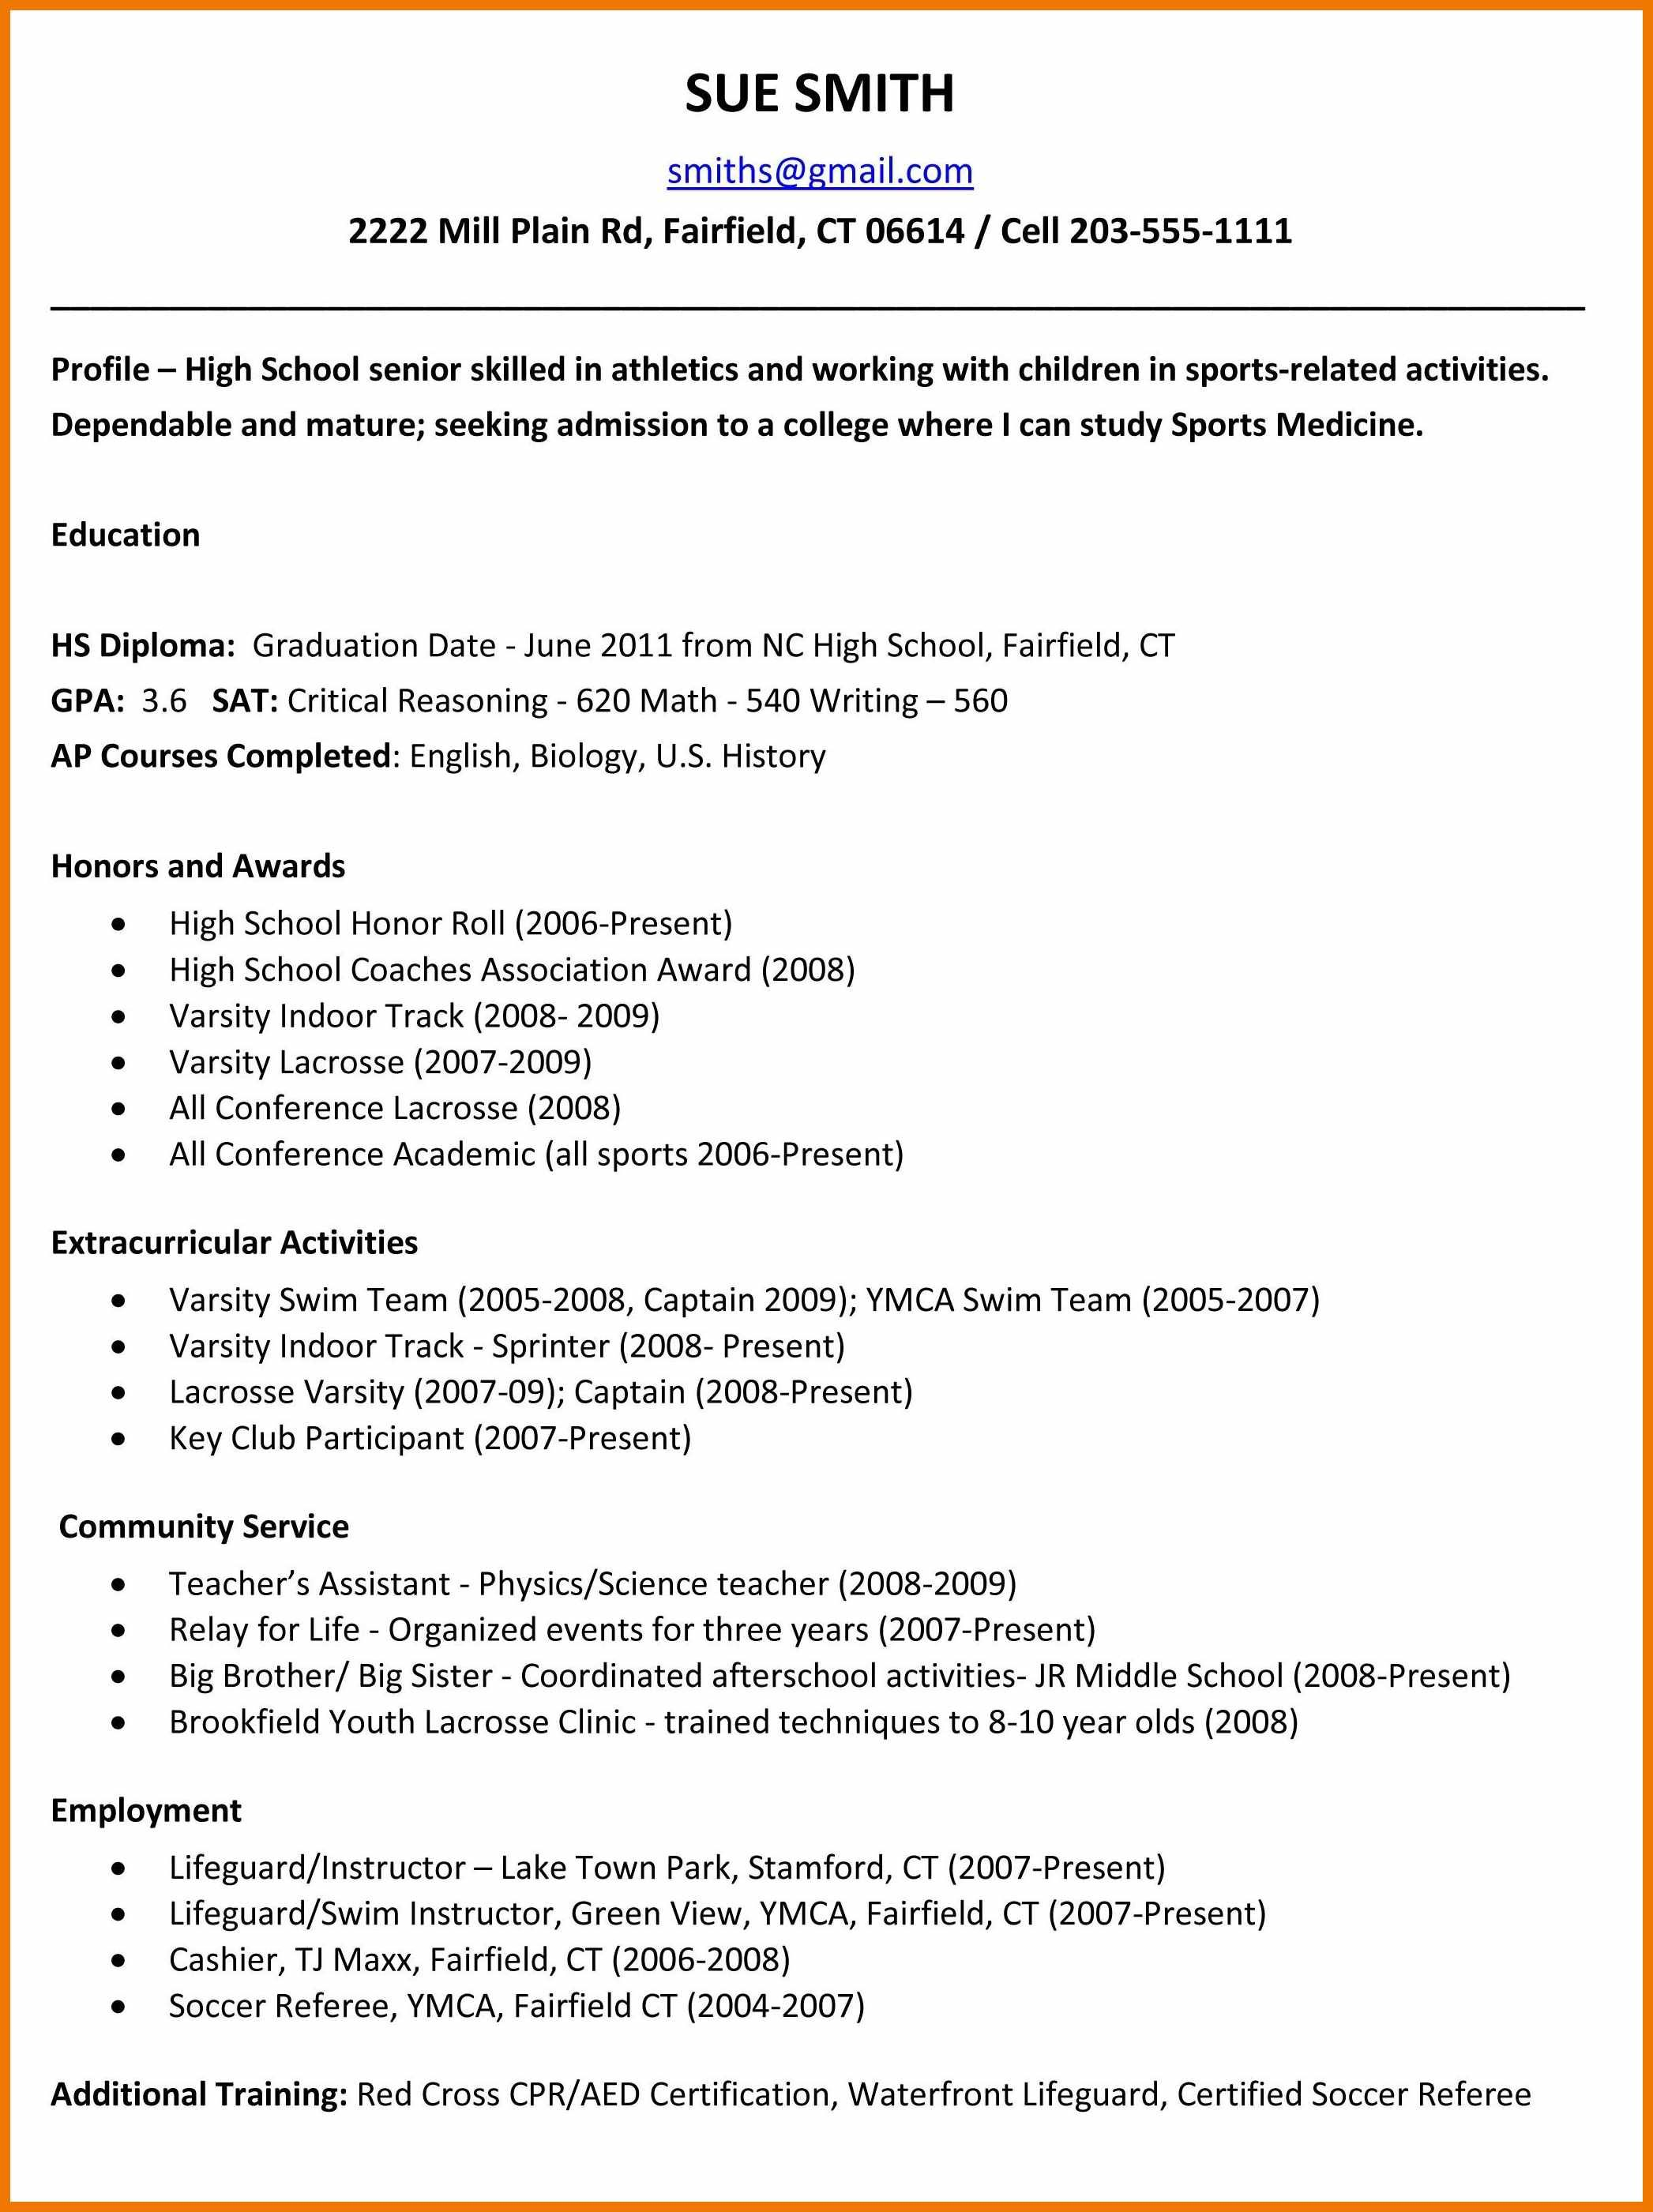 High School Senior College Resume Examples High School Senior